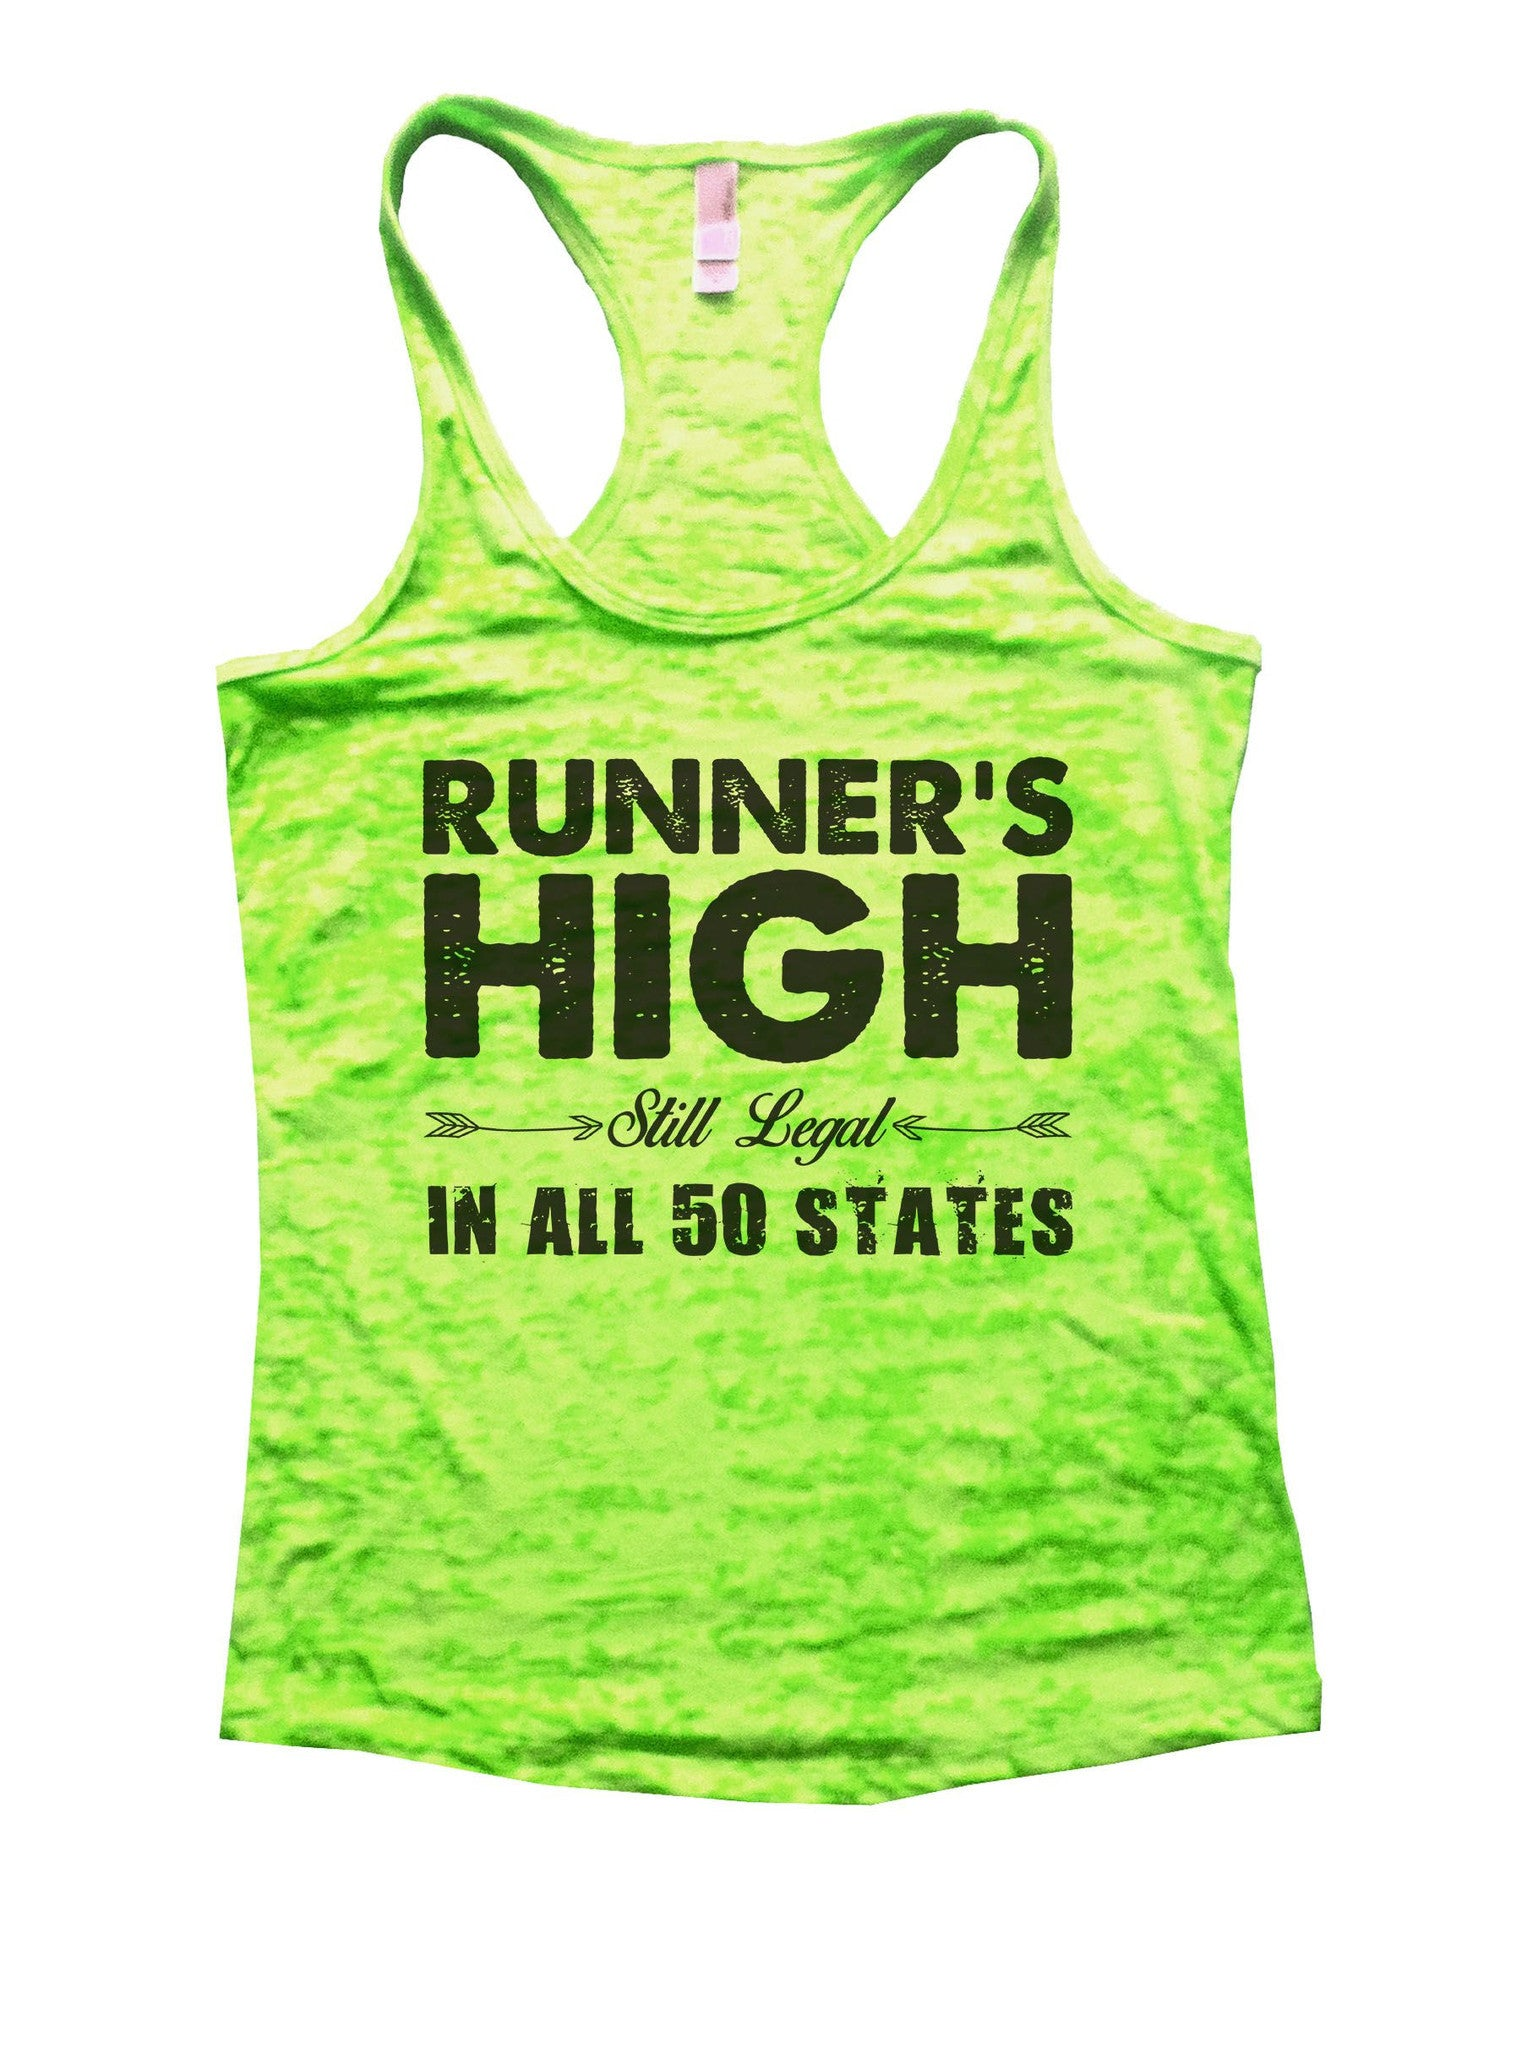 Runner's High Still Legal In All 50 States Burnout Tank Top By BurnoutTankTops.com - 902 - Funny Shirts Tank Tops Burnouts and Triblends  - 3